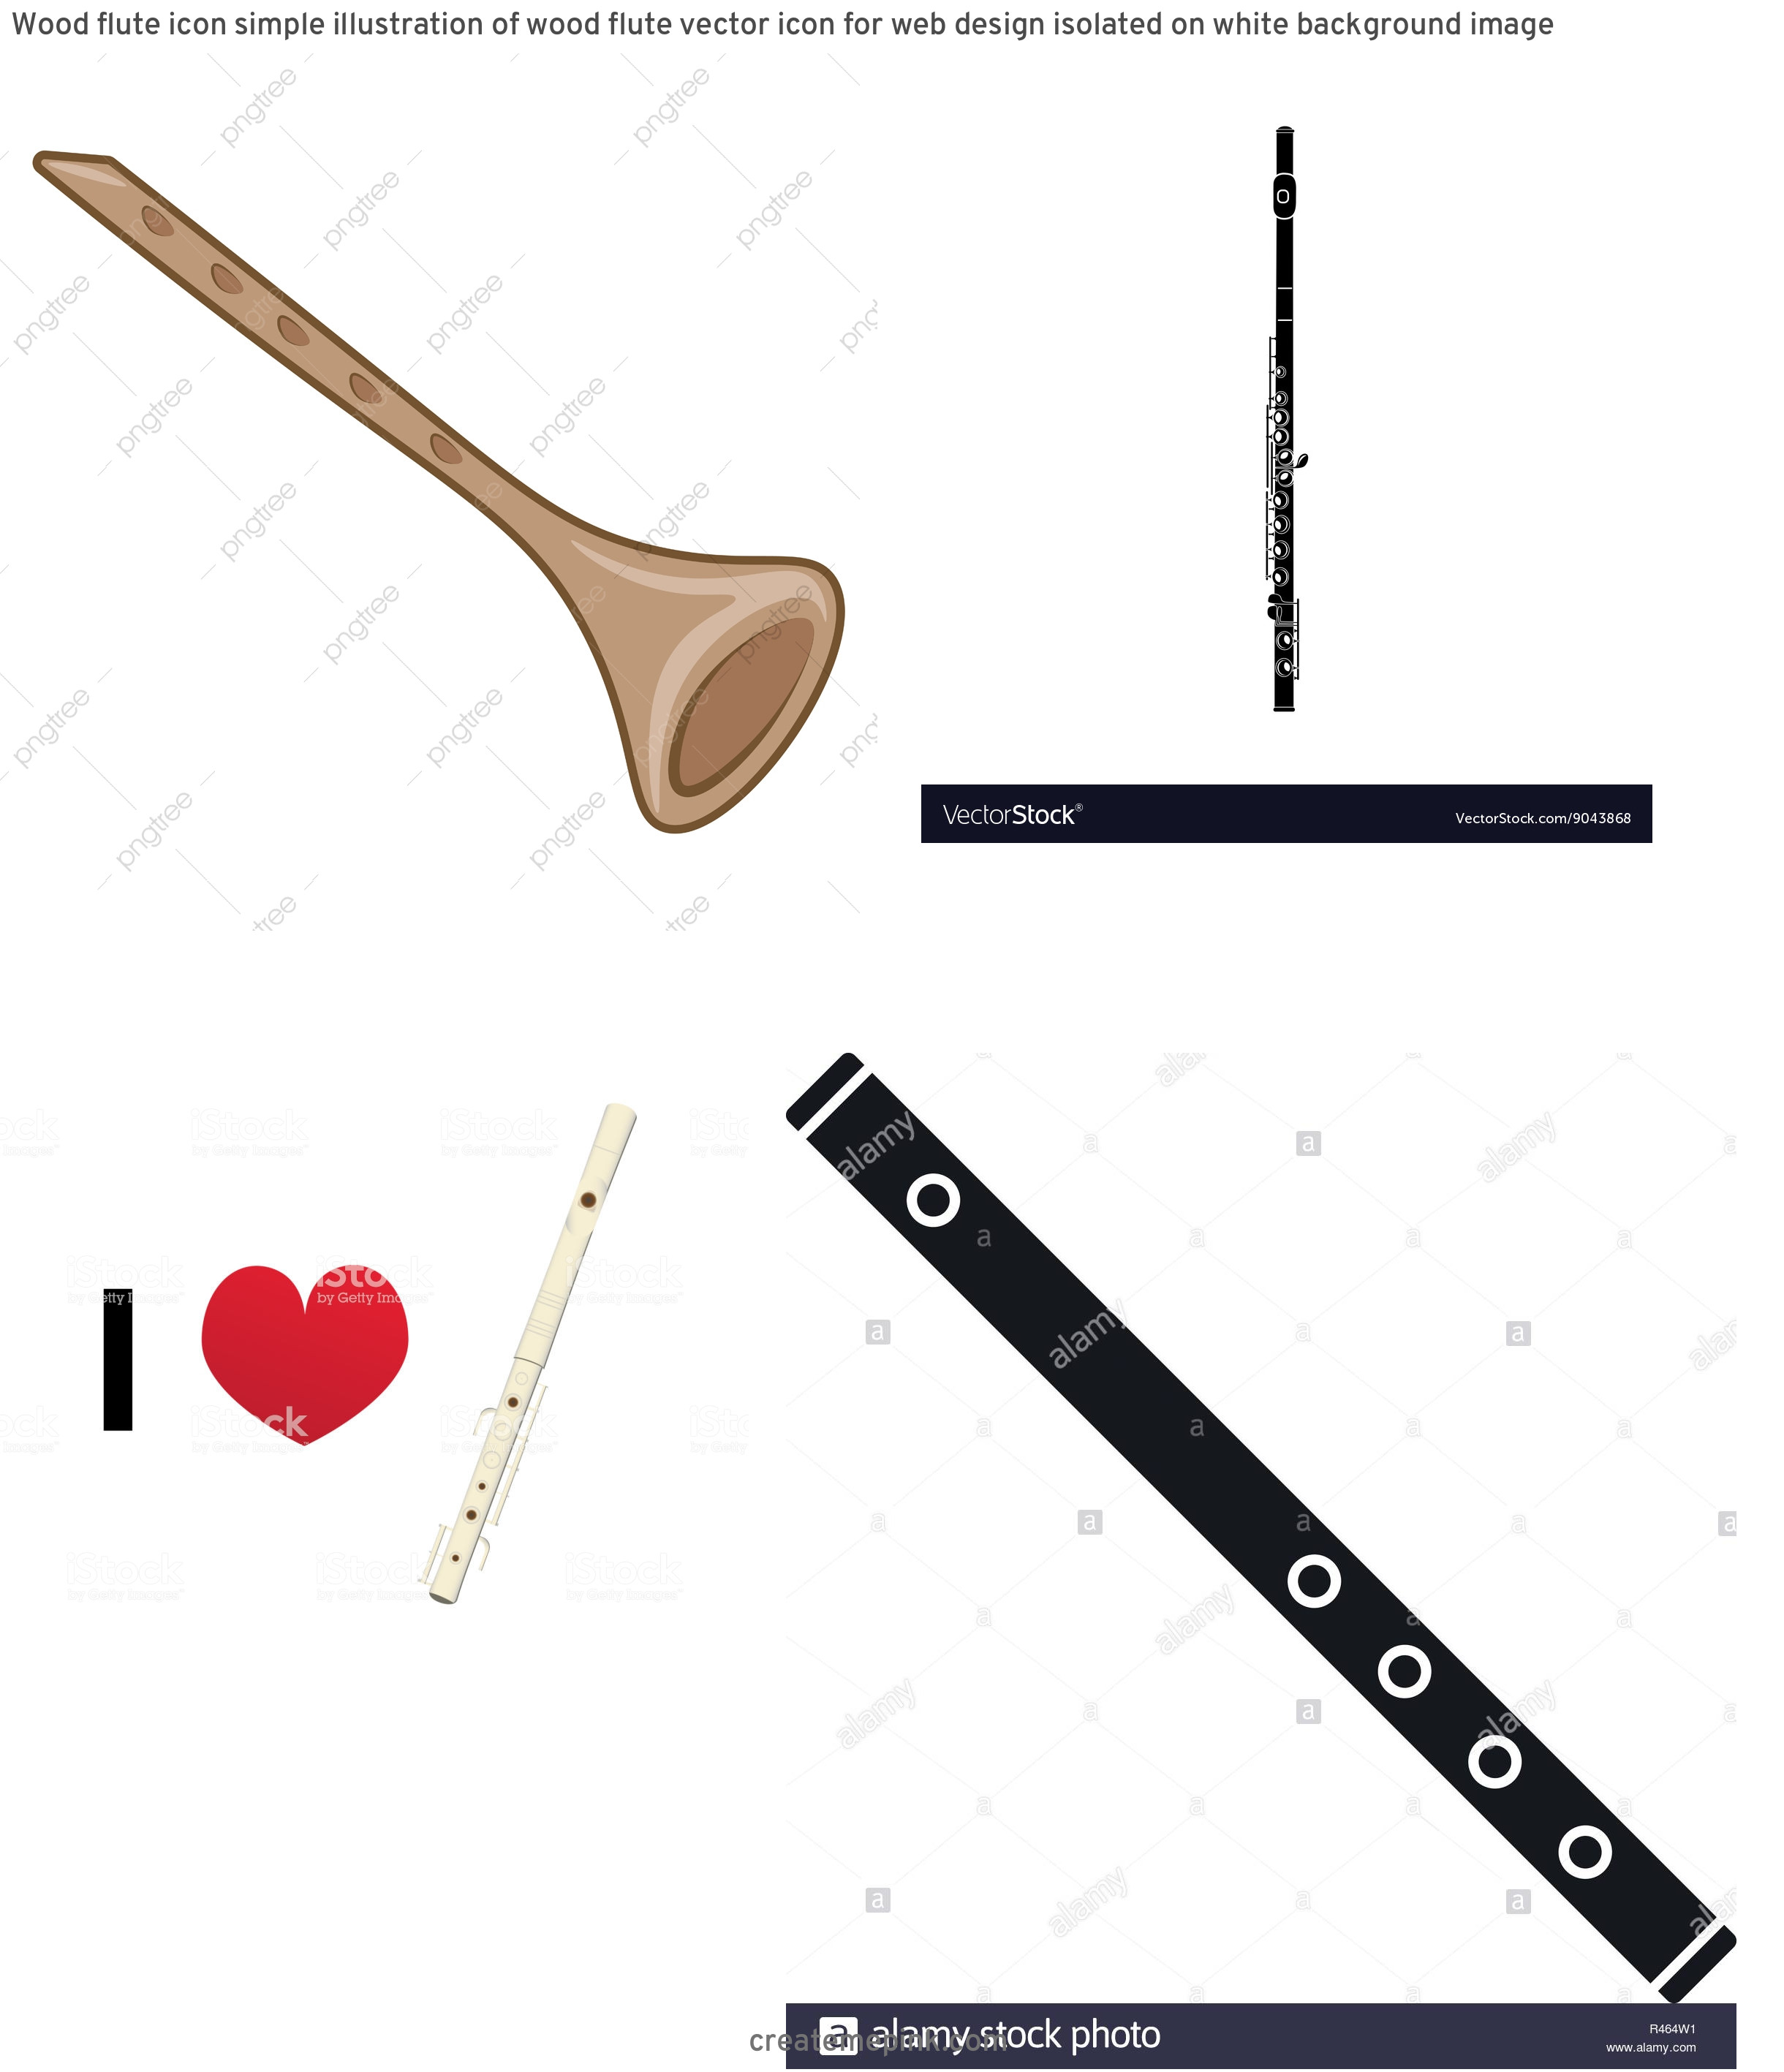 Flute Vector: Wood Flute Icon Simple Illustration Of Wood Flute Vector Icon For Web Design Isolated On White Background Image